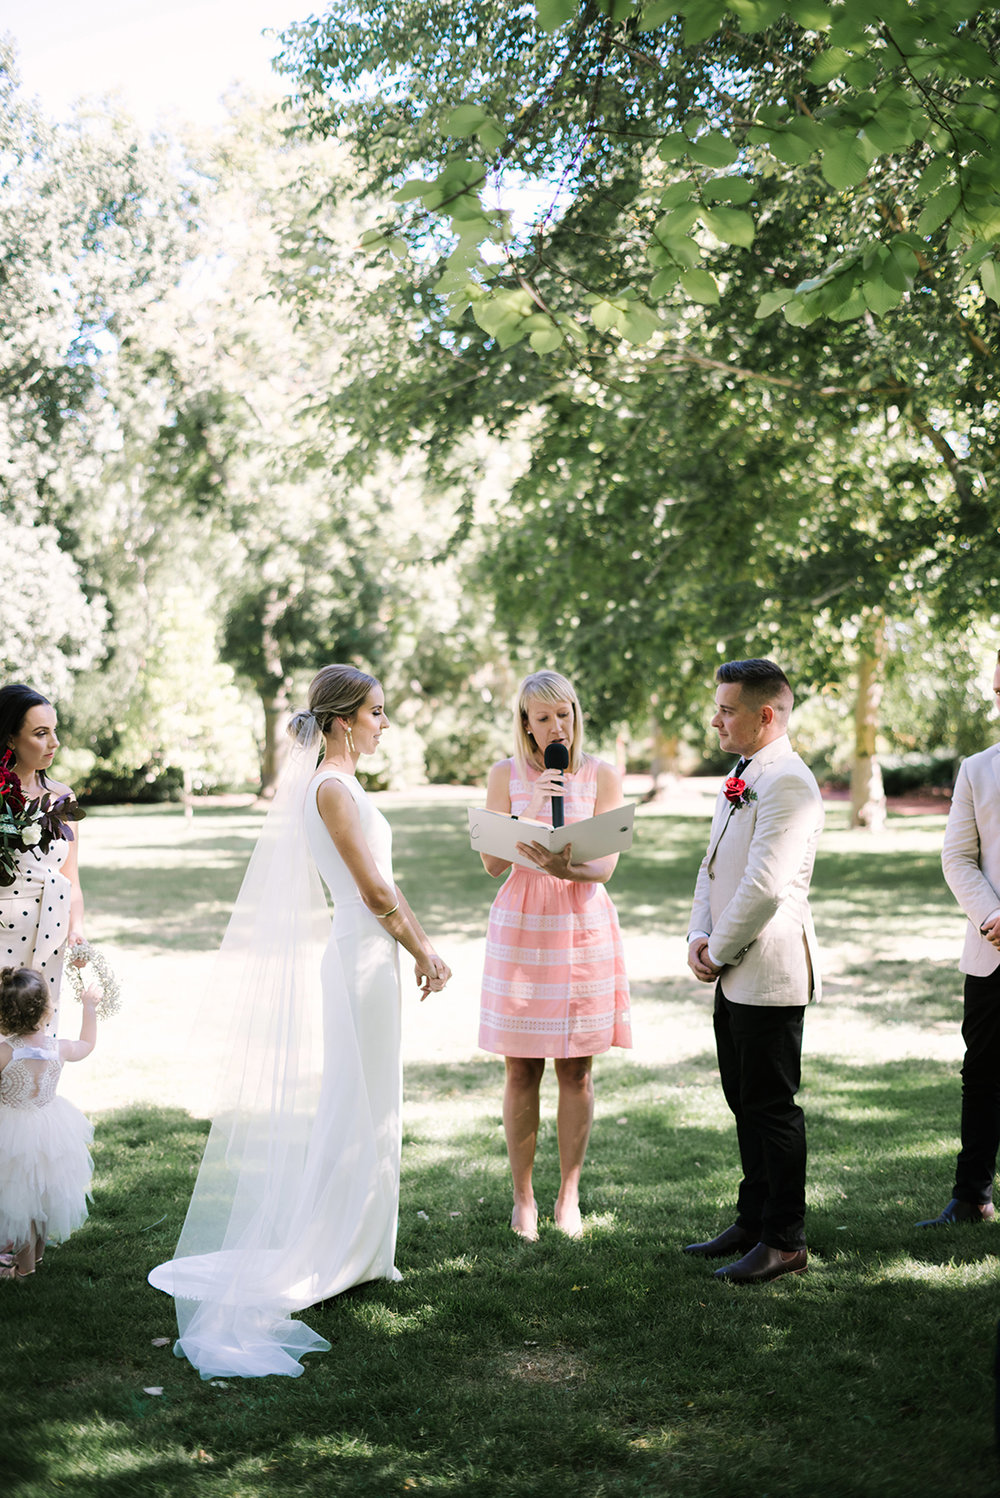 I_Got_You_Babe_Co._Megan_Andrew_Country_Property_Wedding_Victoria0033.JPG